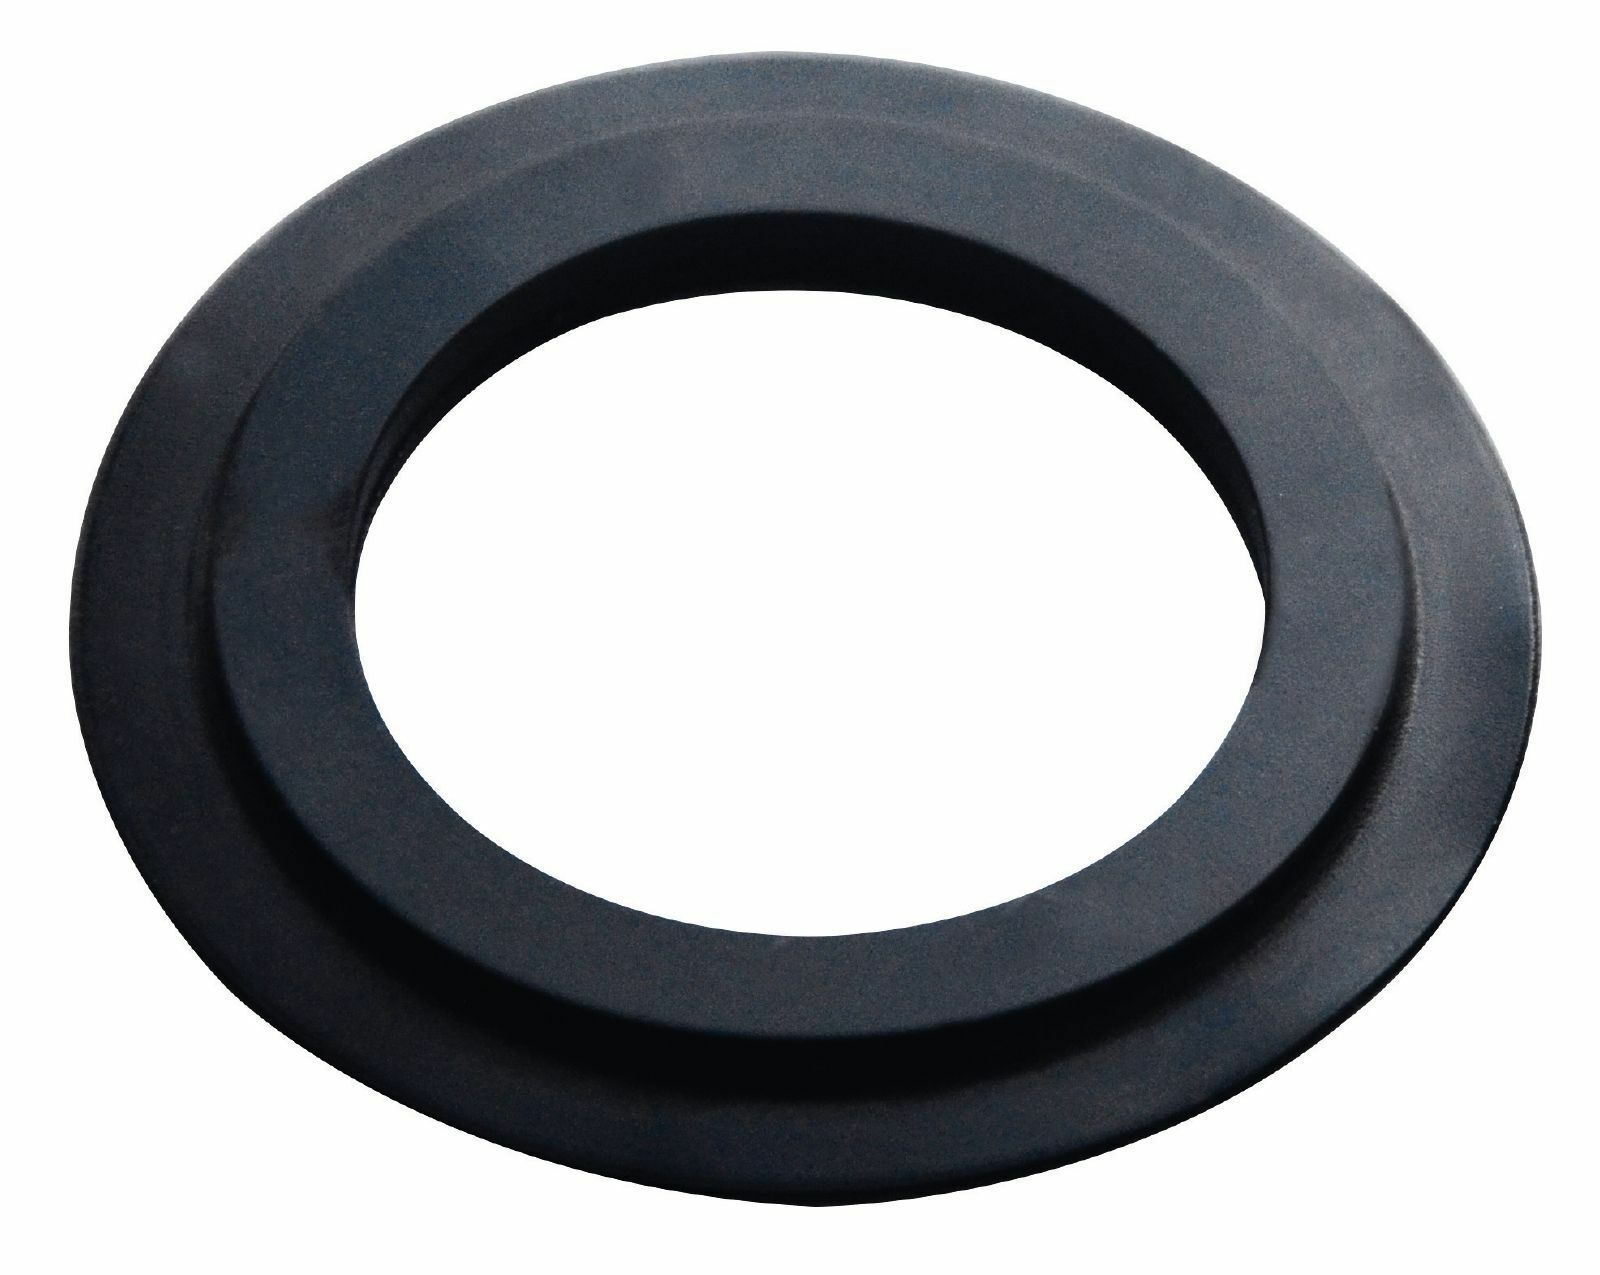 franke kitchen sink waste rubber seal for strainer waste plug